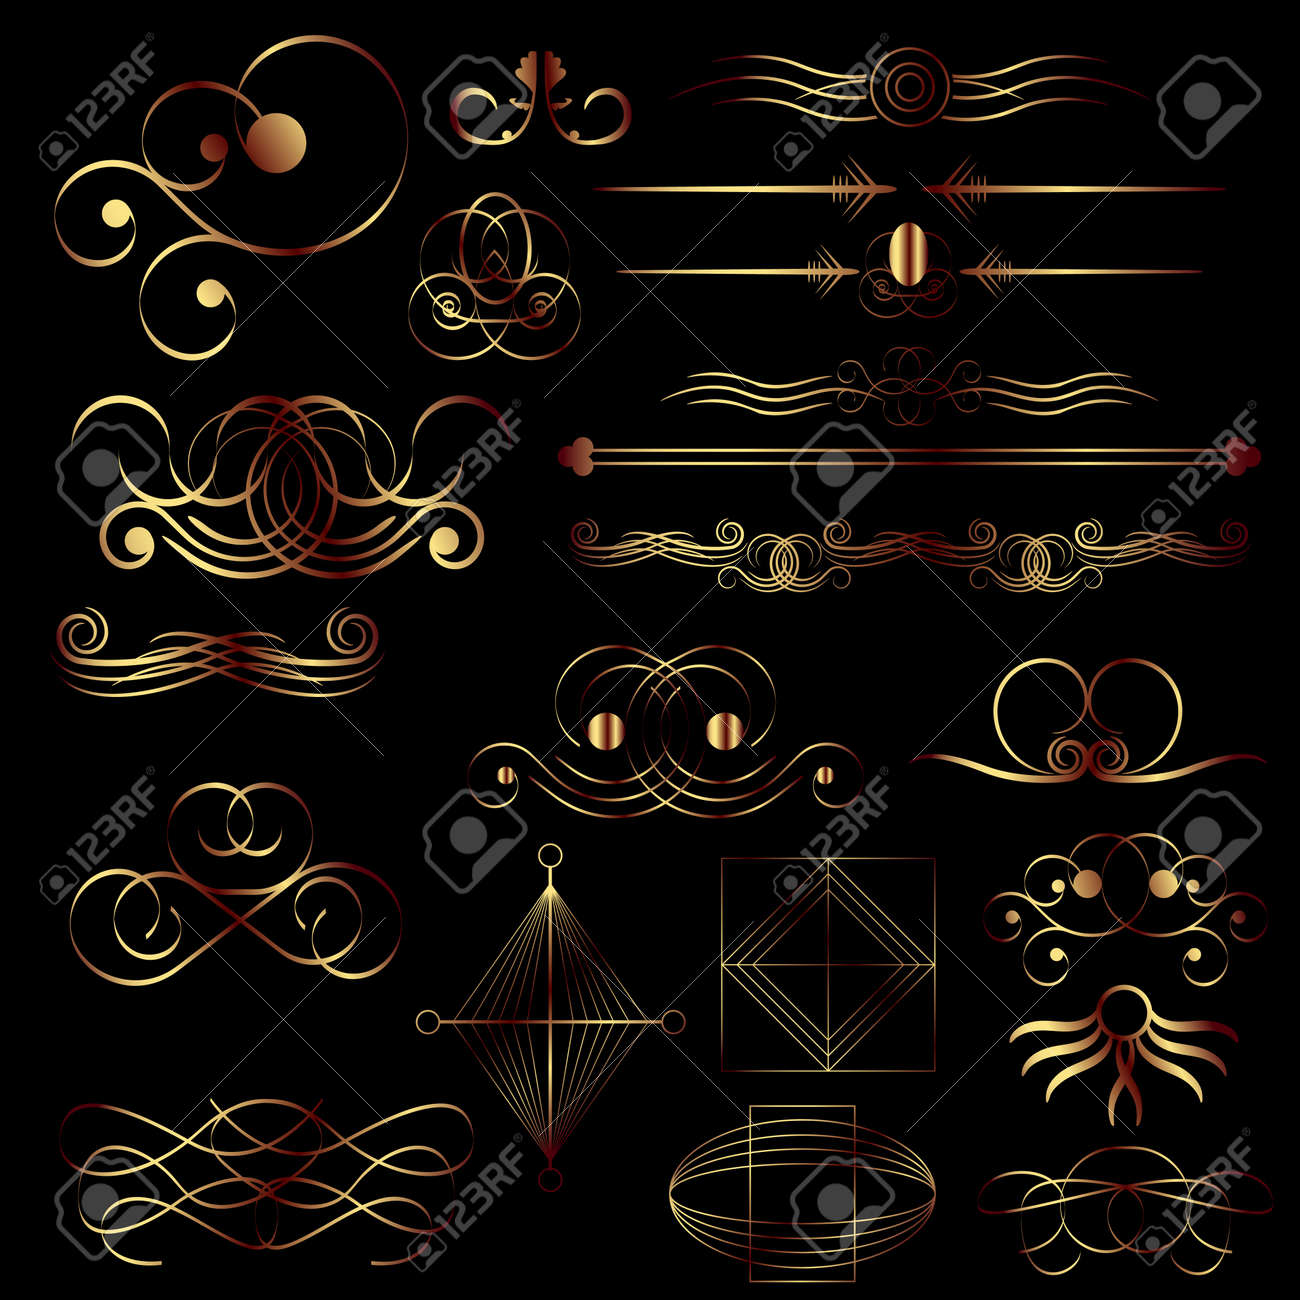 Calligraphic design elements Stock Vector - 8767073